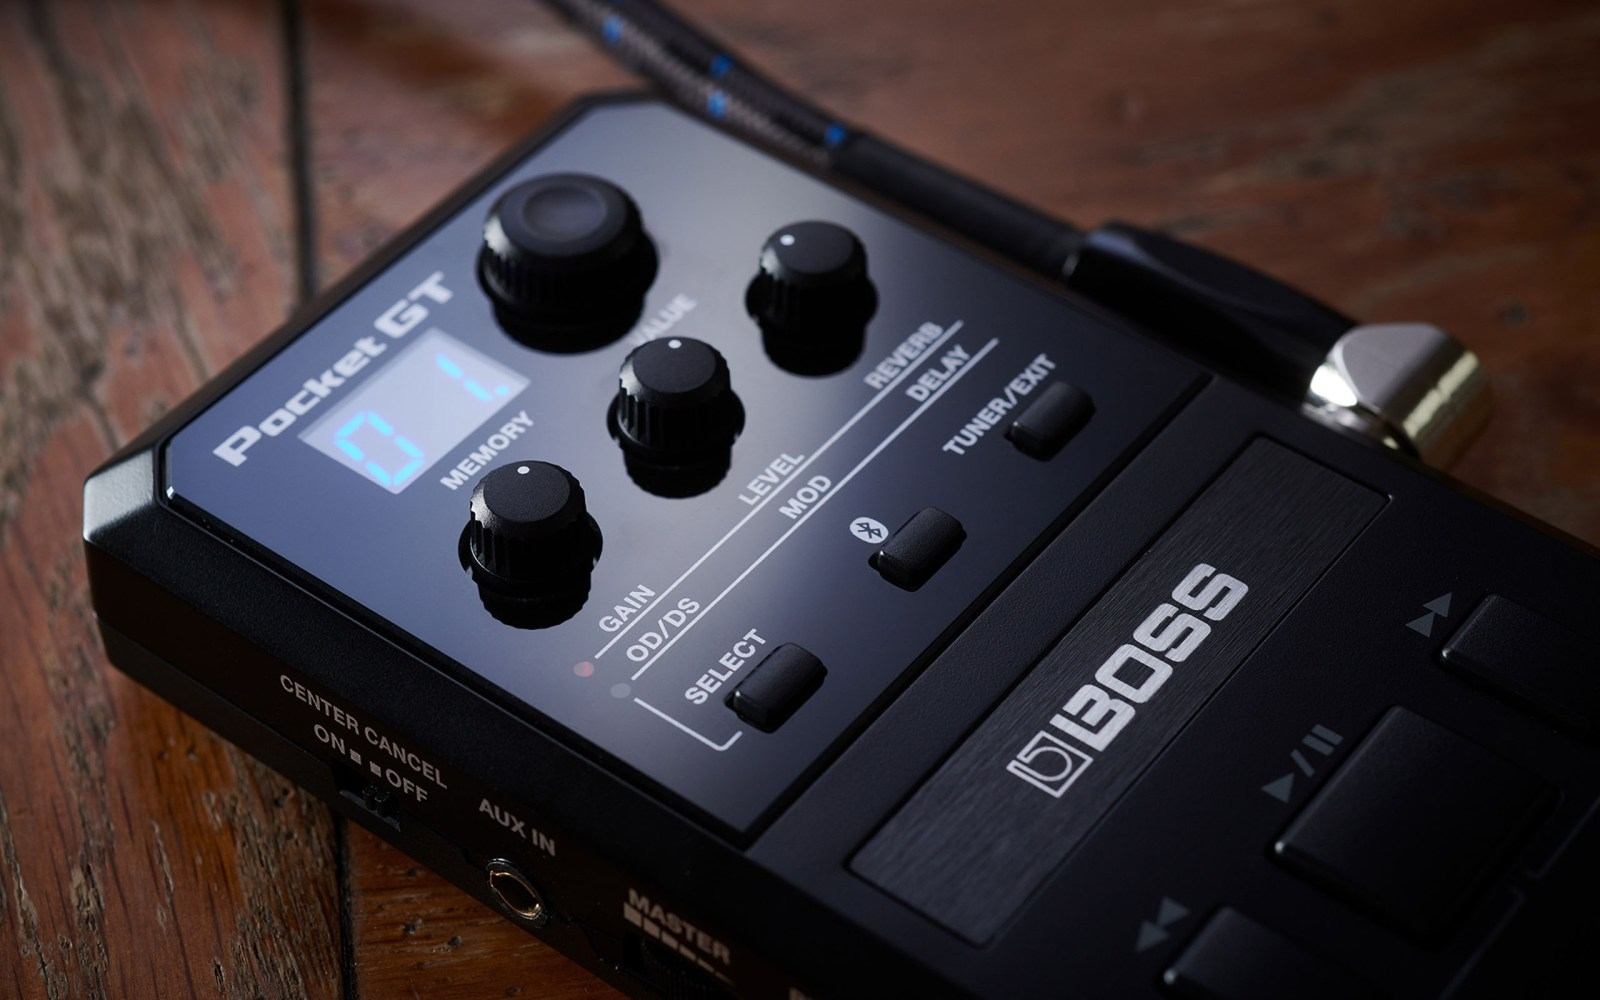 Pocket GT it's a smart effects processor that teaches you to play the guitar easily